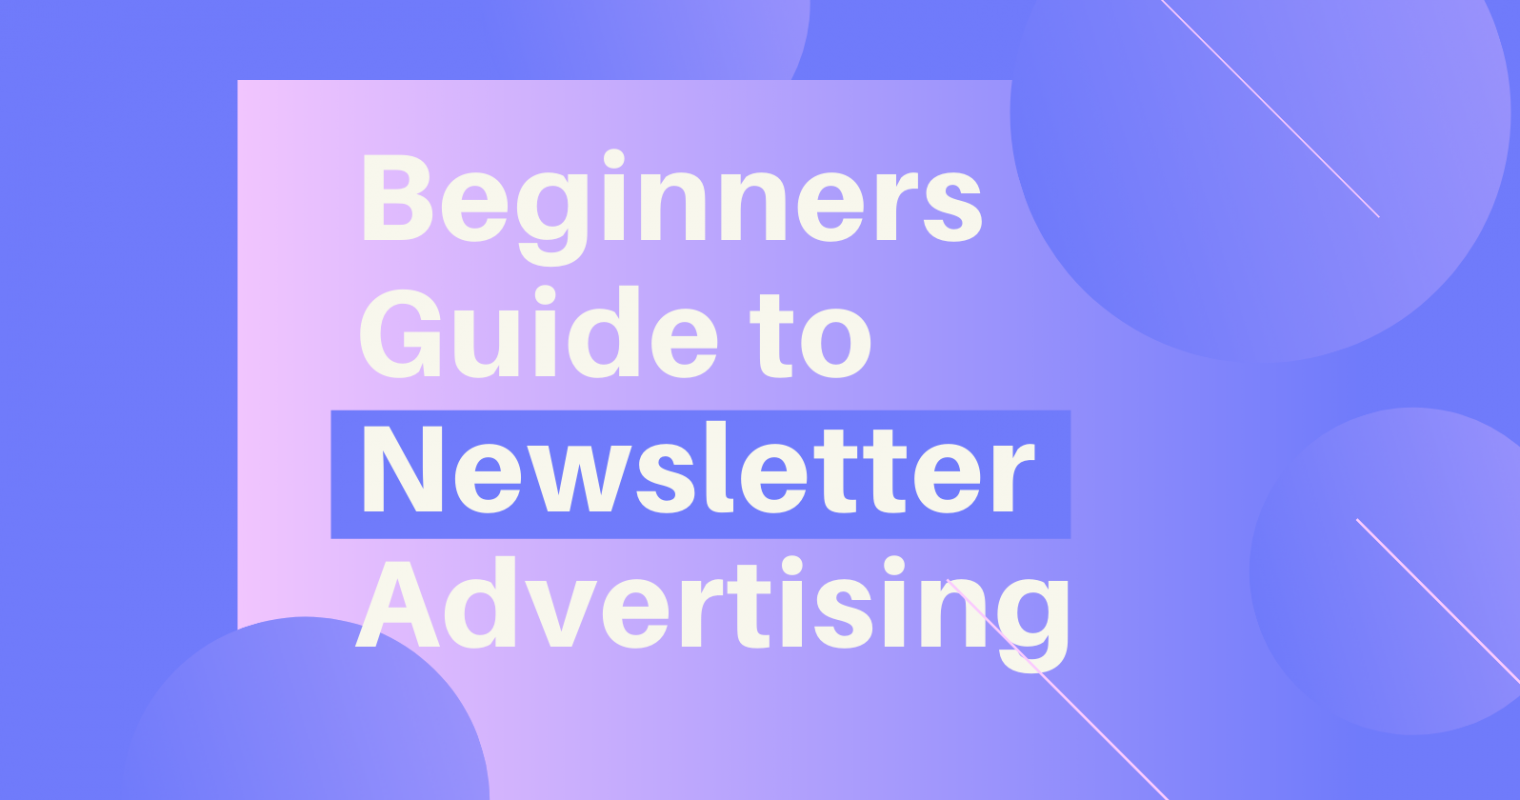 How to Advertise in Newsletters: A Beginner's Guide